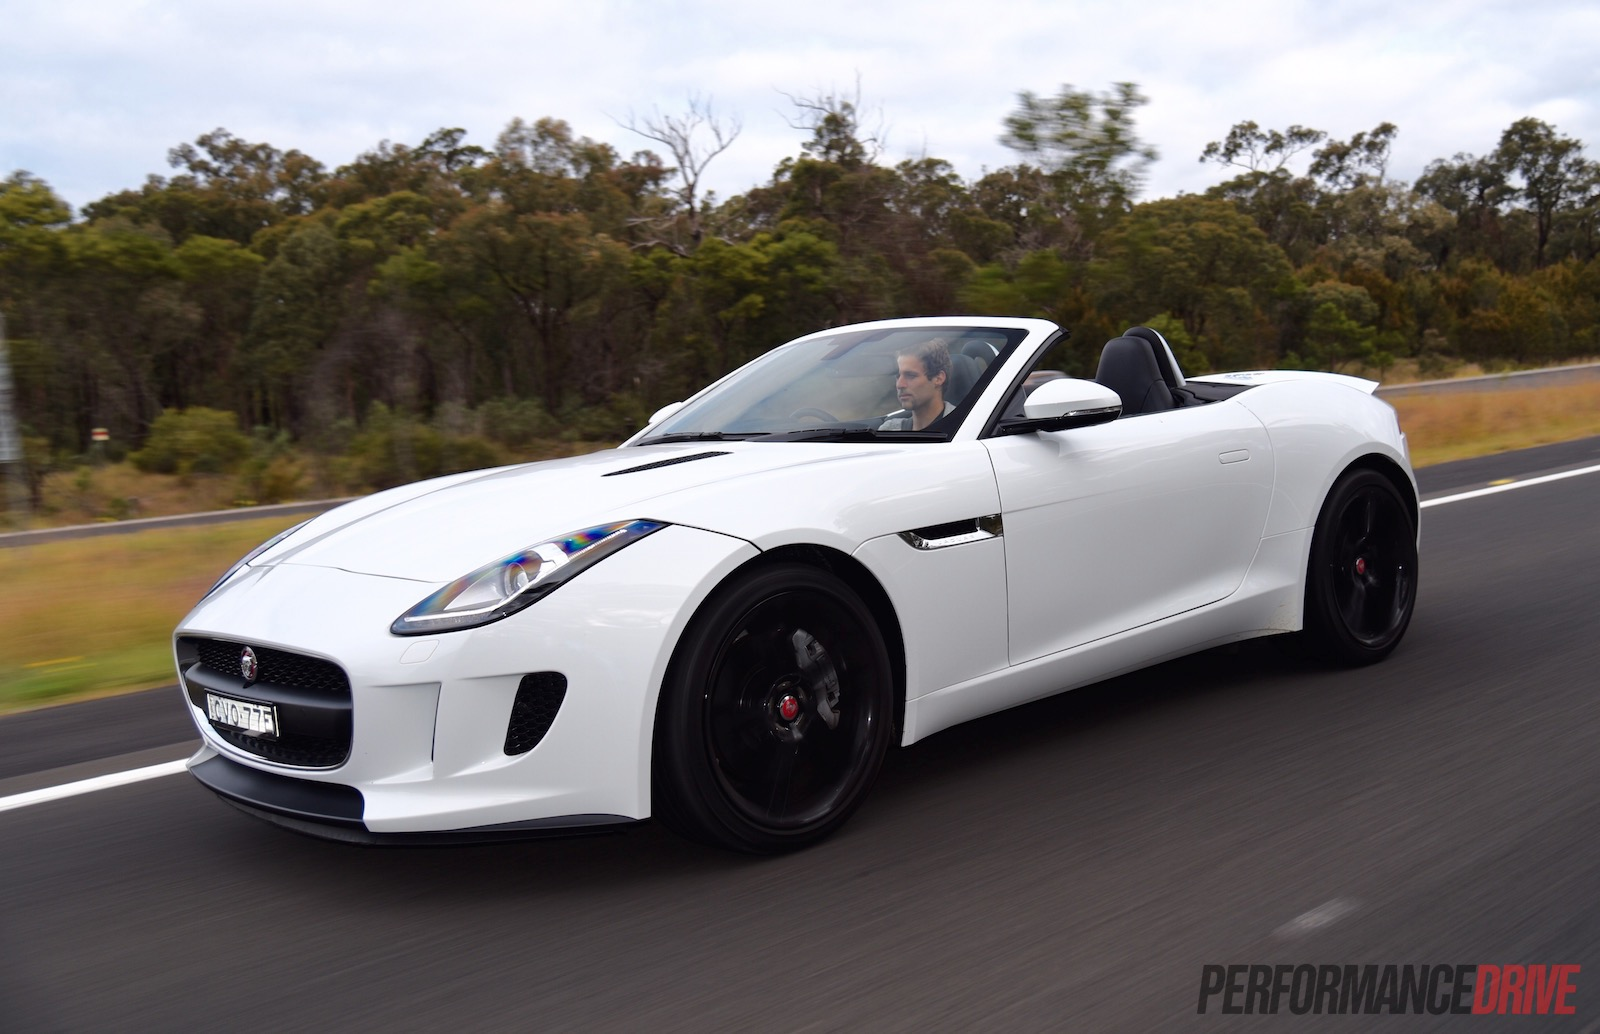 Awesome Review 2015 Jaguar FType V6 5085  Cars Performance Reviews And